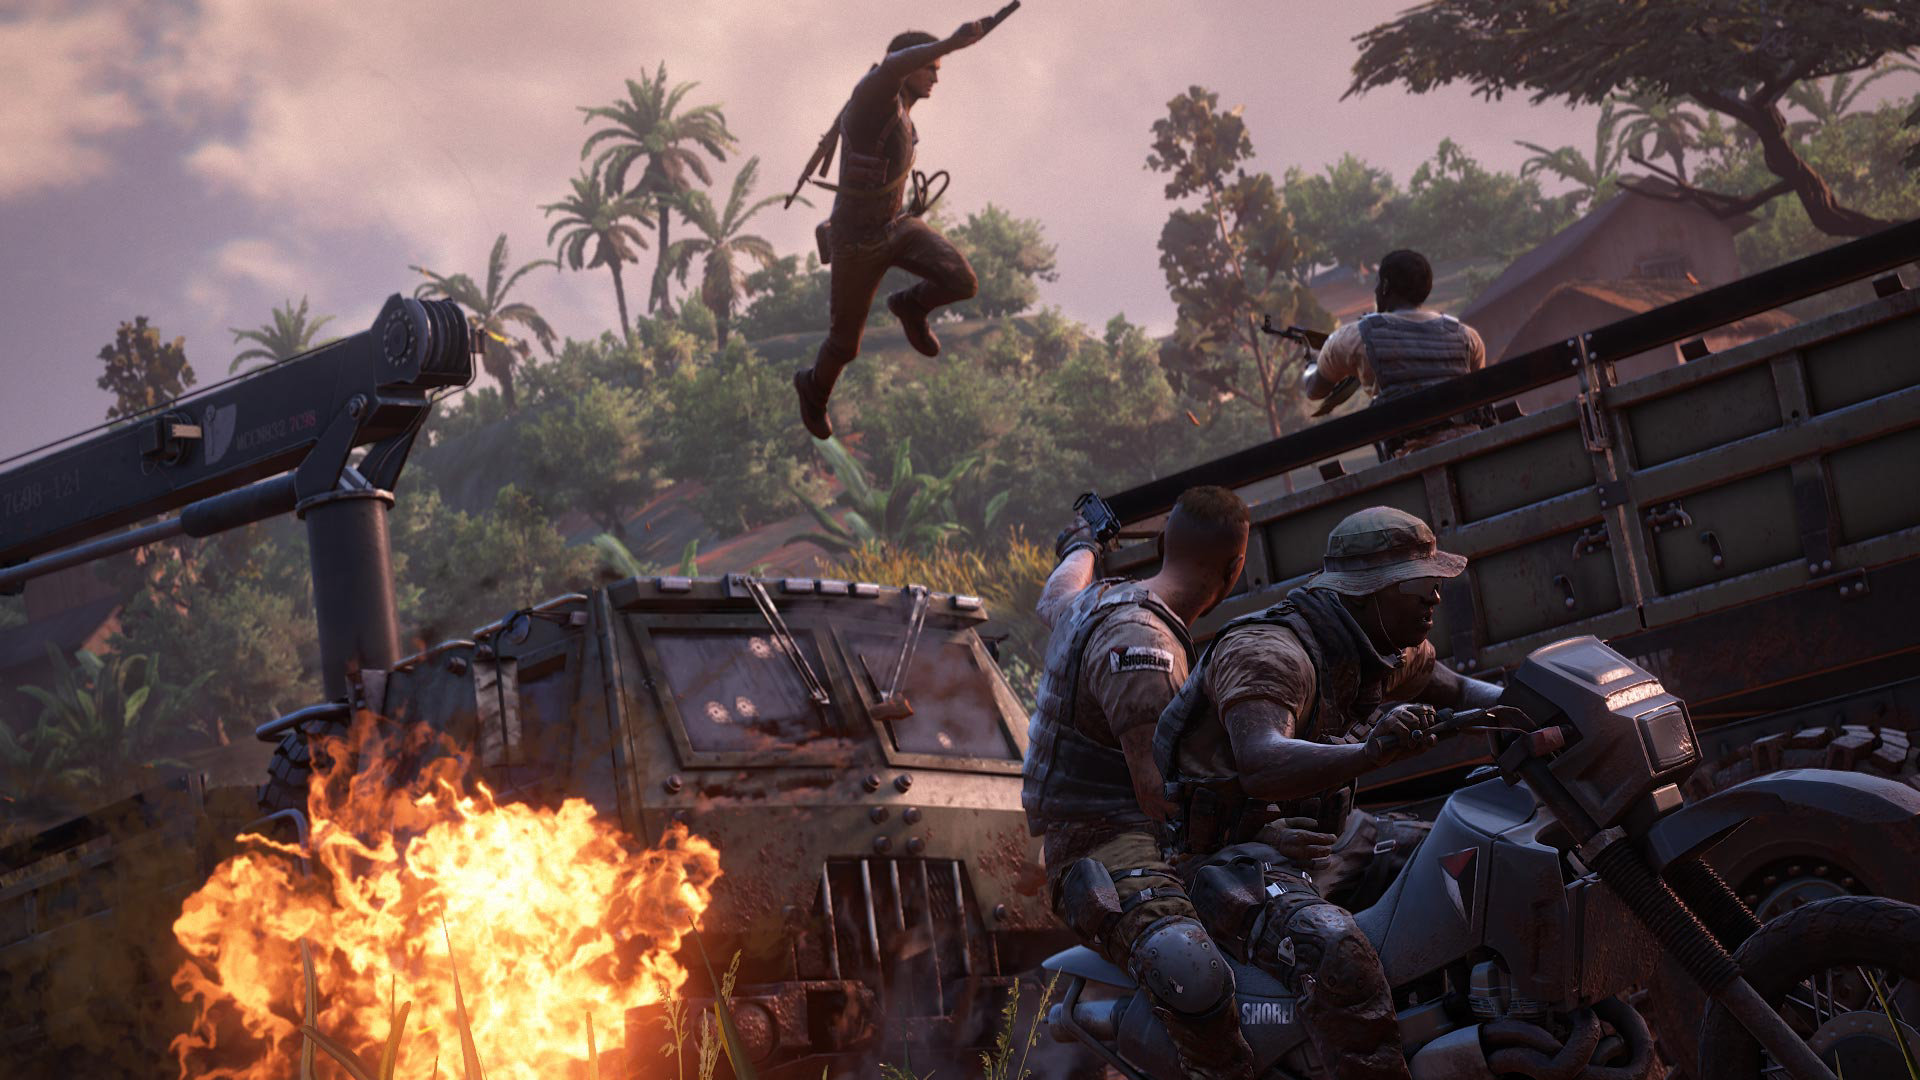 uncharted-4-screen-20-ps4-eu-23june15.jpg